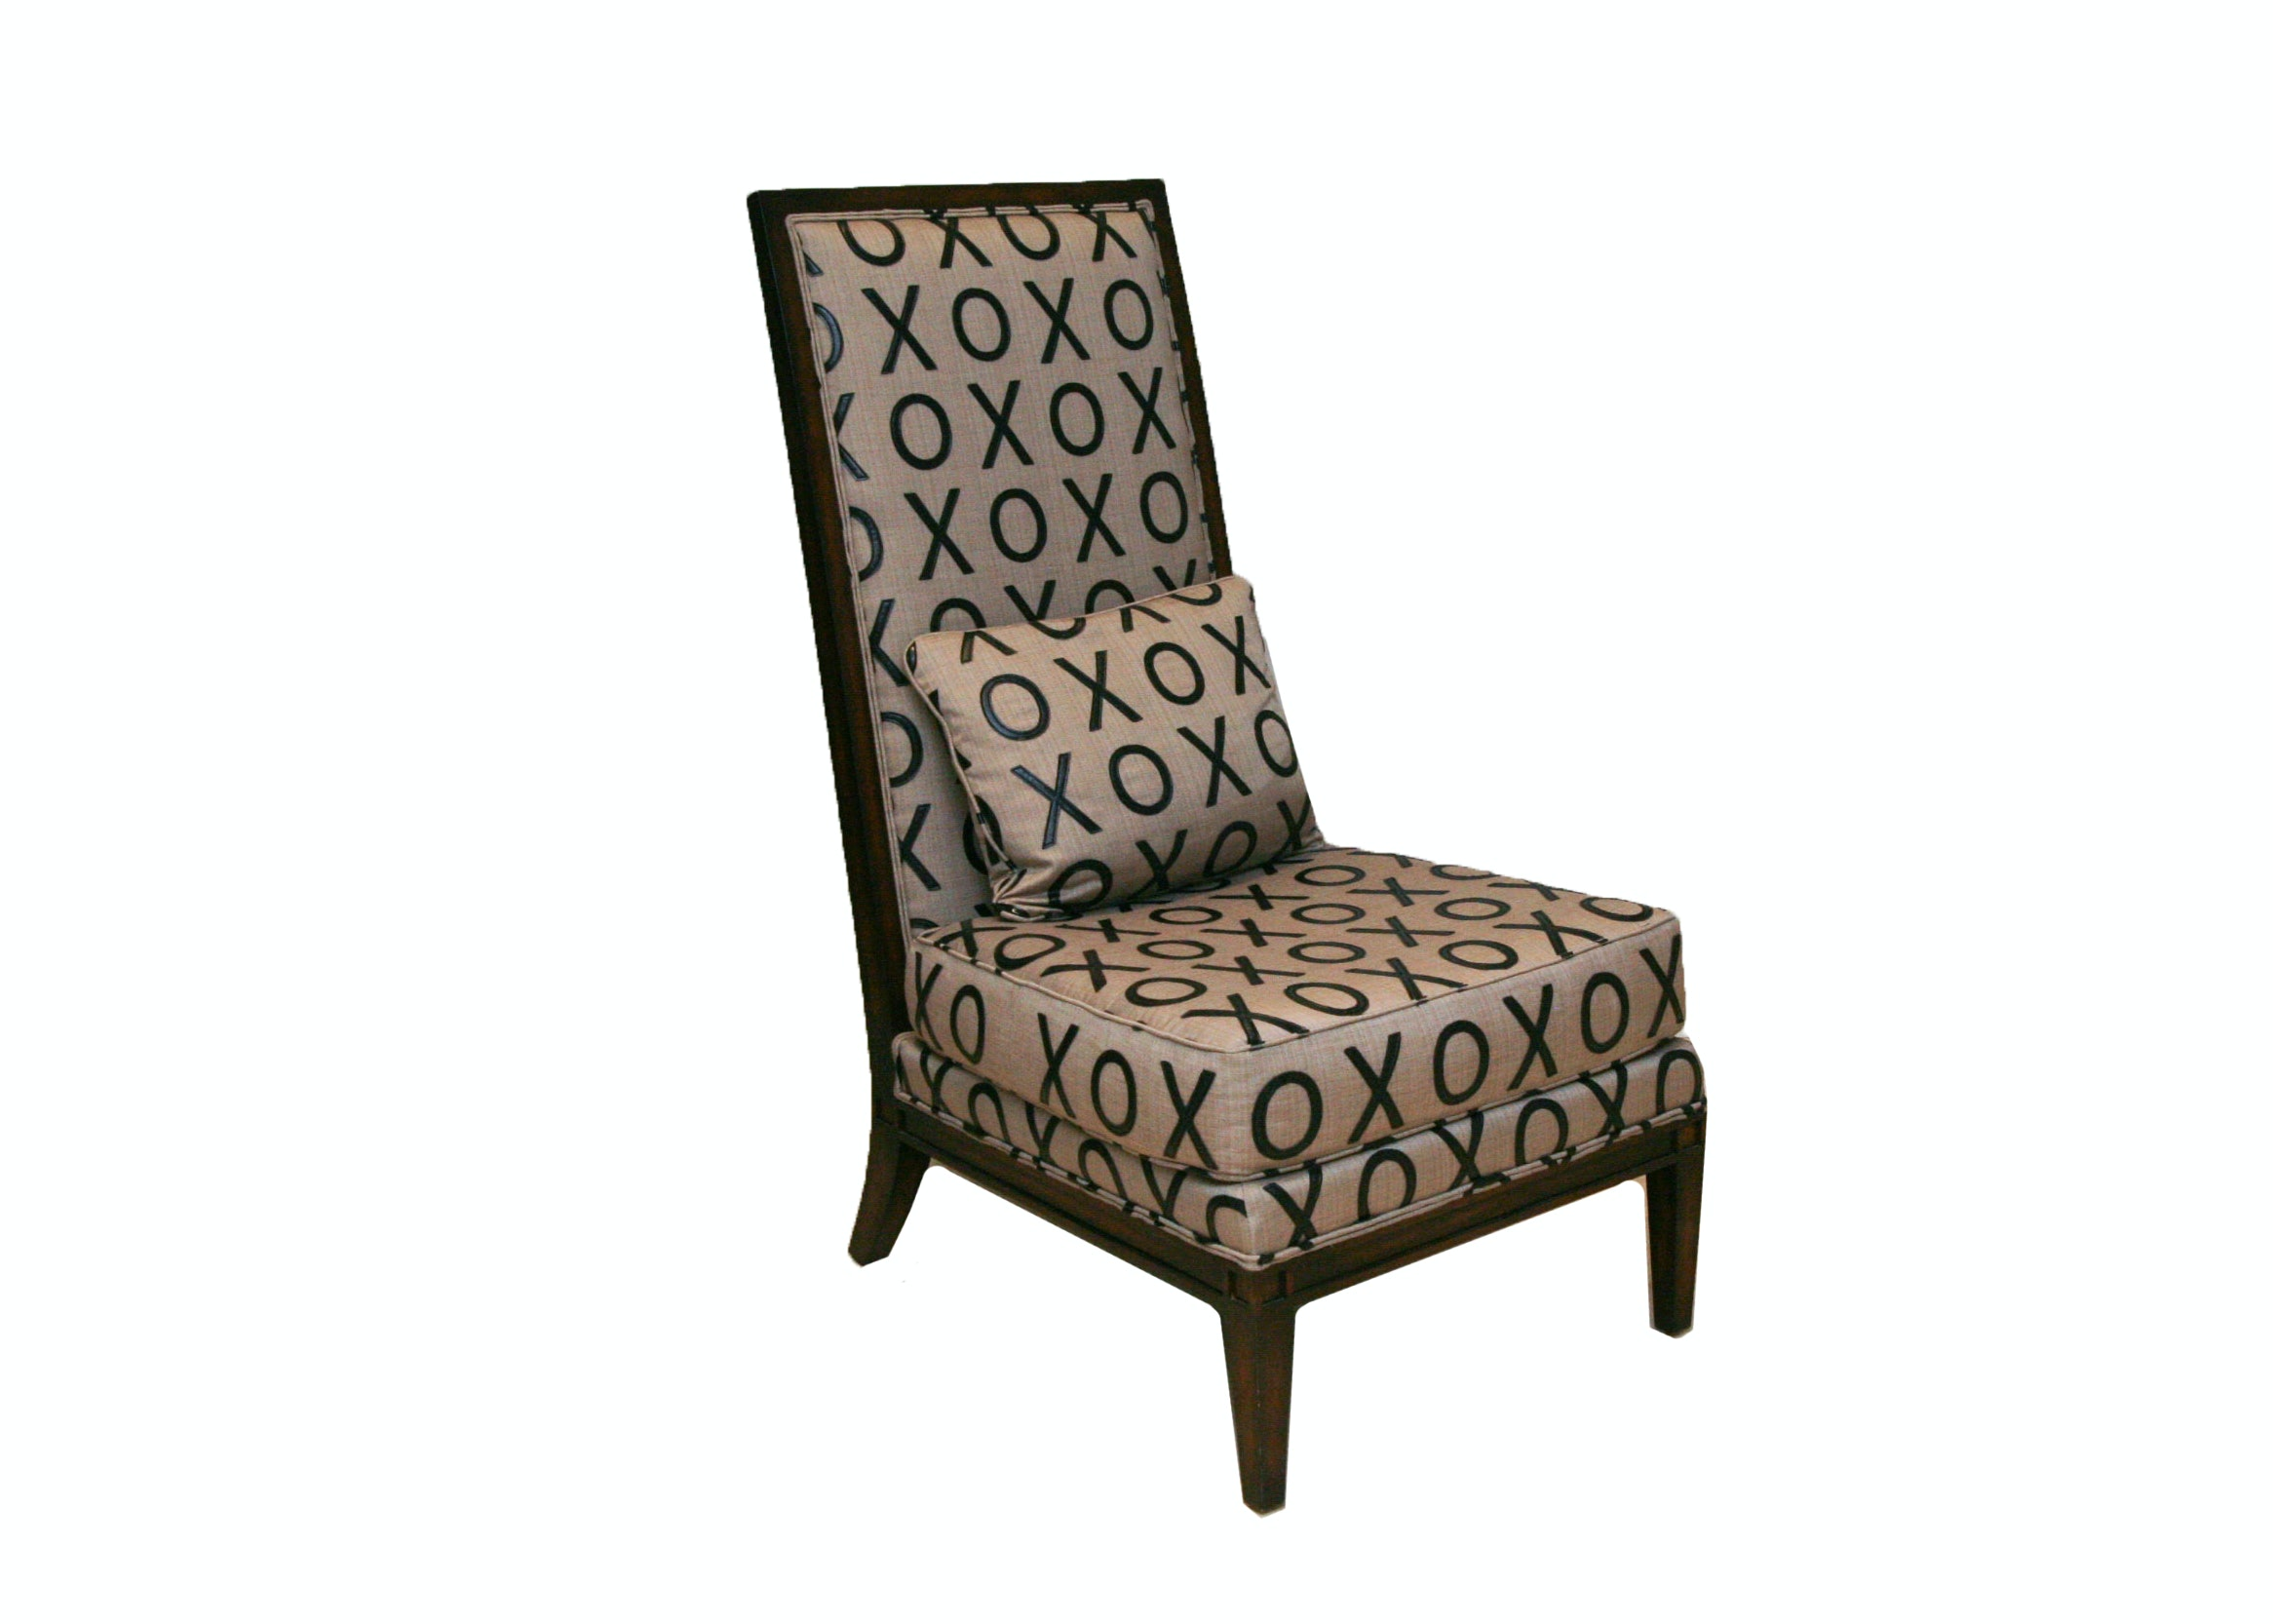 Xoxo furniture Shabby Chic Everything But The House Contemporary Faux Leather Xoxo Chair Ebth